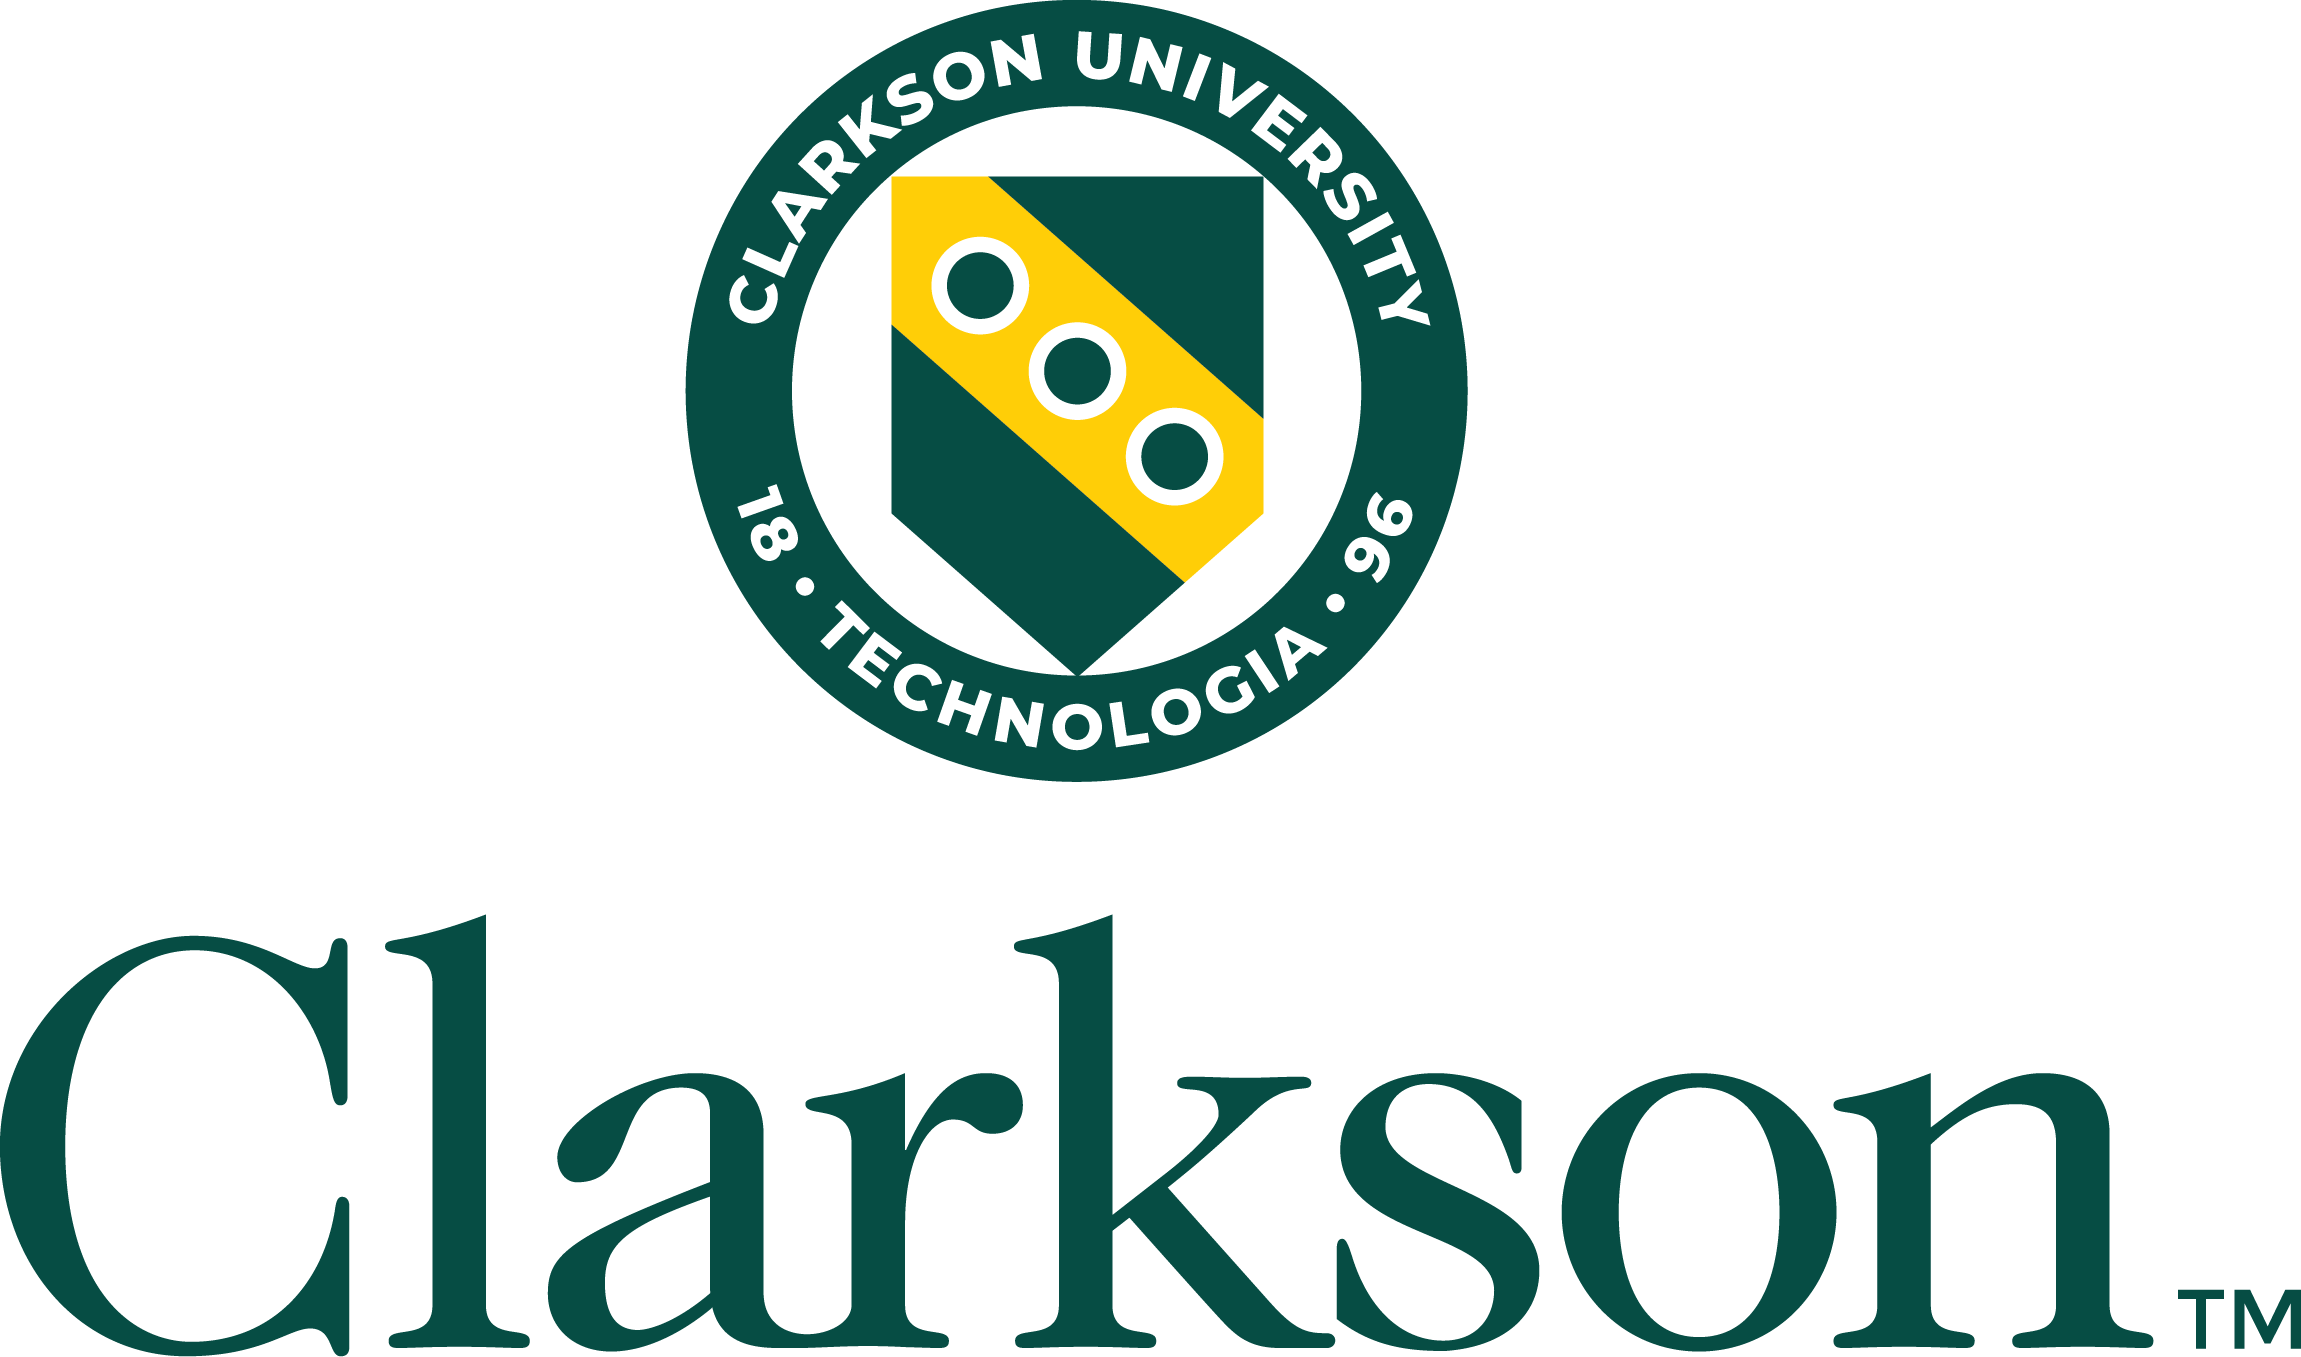 Clarkson University  Overview  Plexussm. Acessory Banners. Mega Man Decals. Now Next Signs. Star Wars Coffee Signs Of Stroke. Boys Name Stickers. School Lettering. Bible Signs Of Stroke. Evergreen Logo